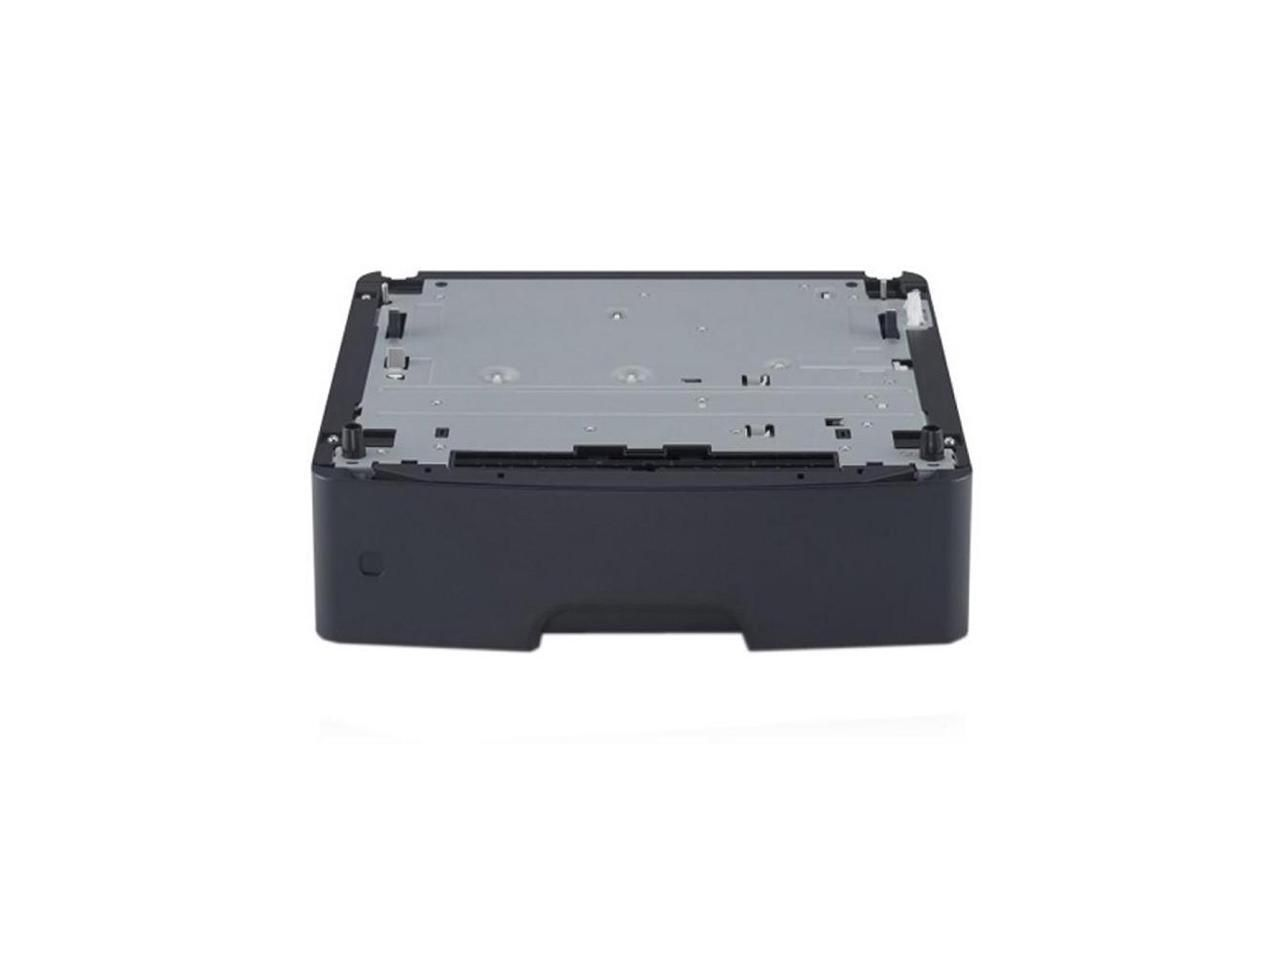 This Item Is Now On Our Webite Dell N9gff 550 Sh Check It Out Here Http Www Widgetree Com Products Dell N9gff 550 Sh In 2020 Paper Tray Cool Tech Printer Paper